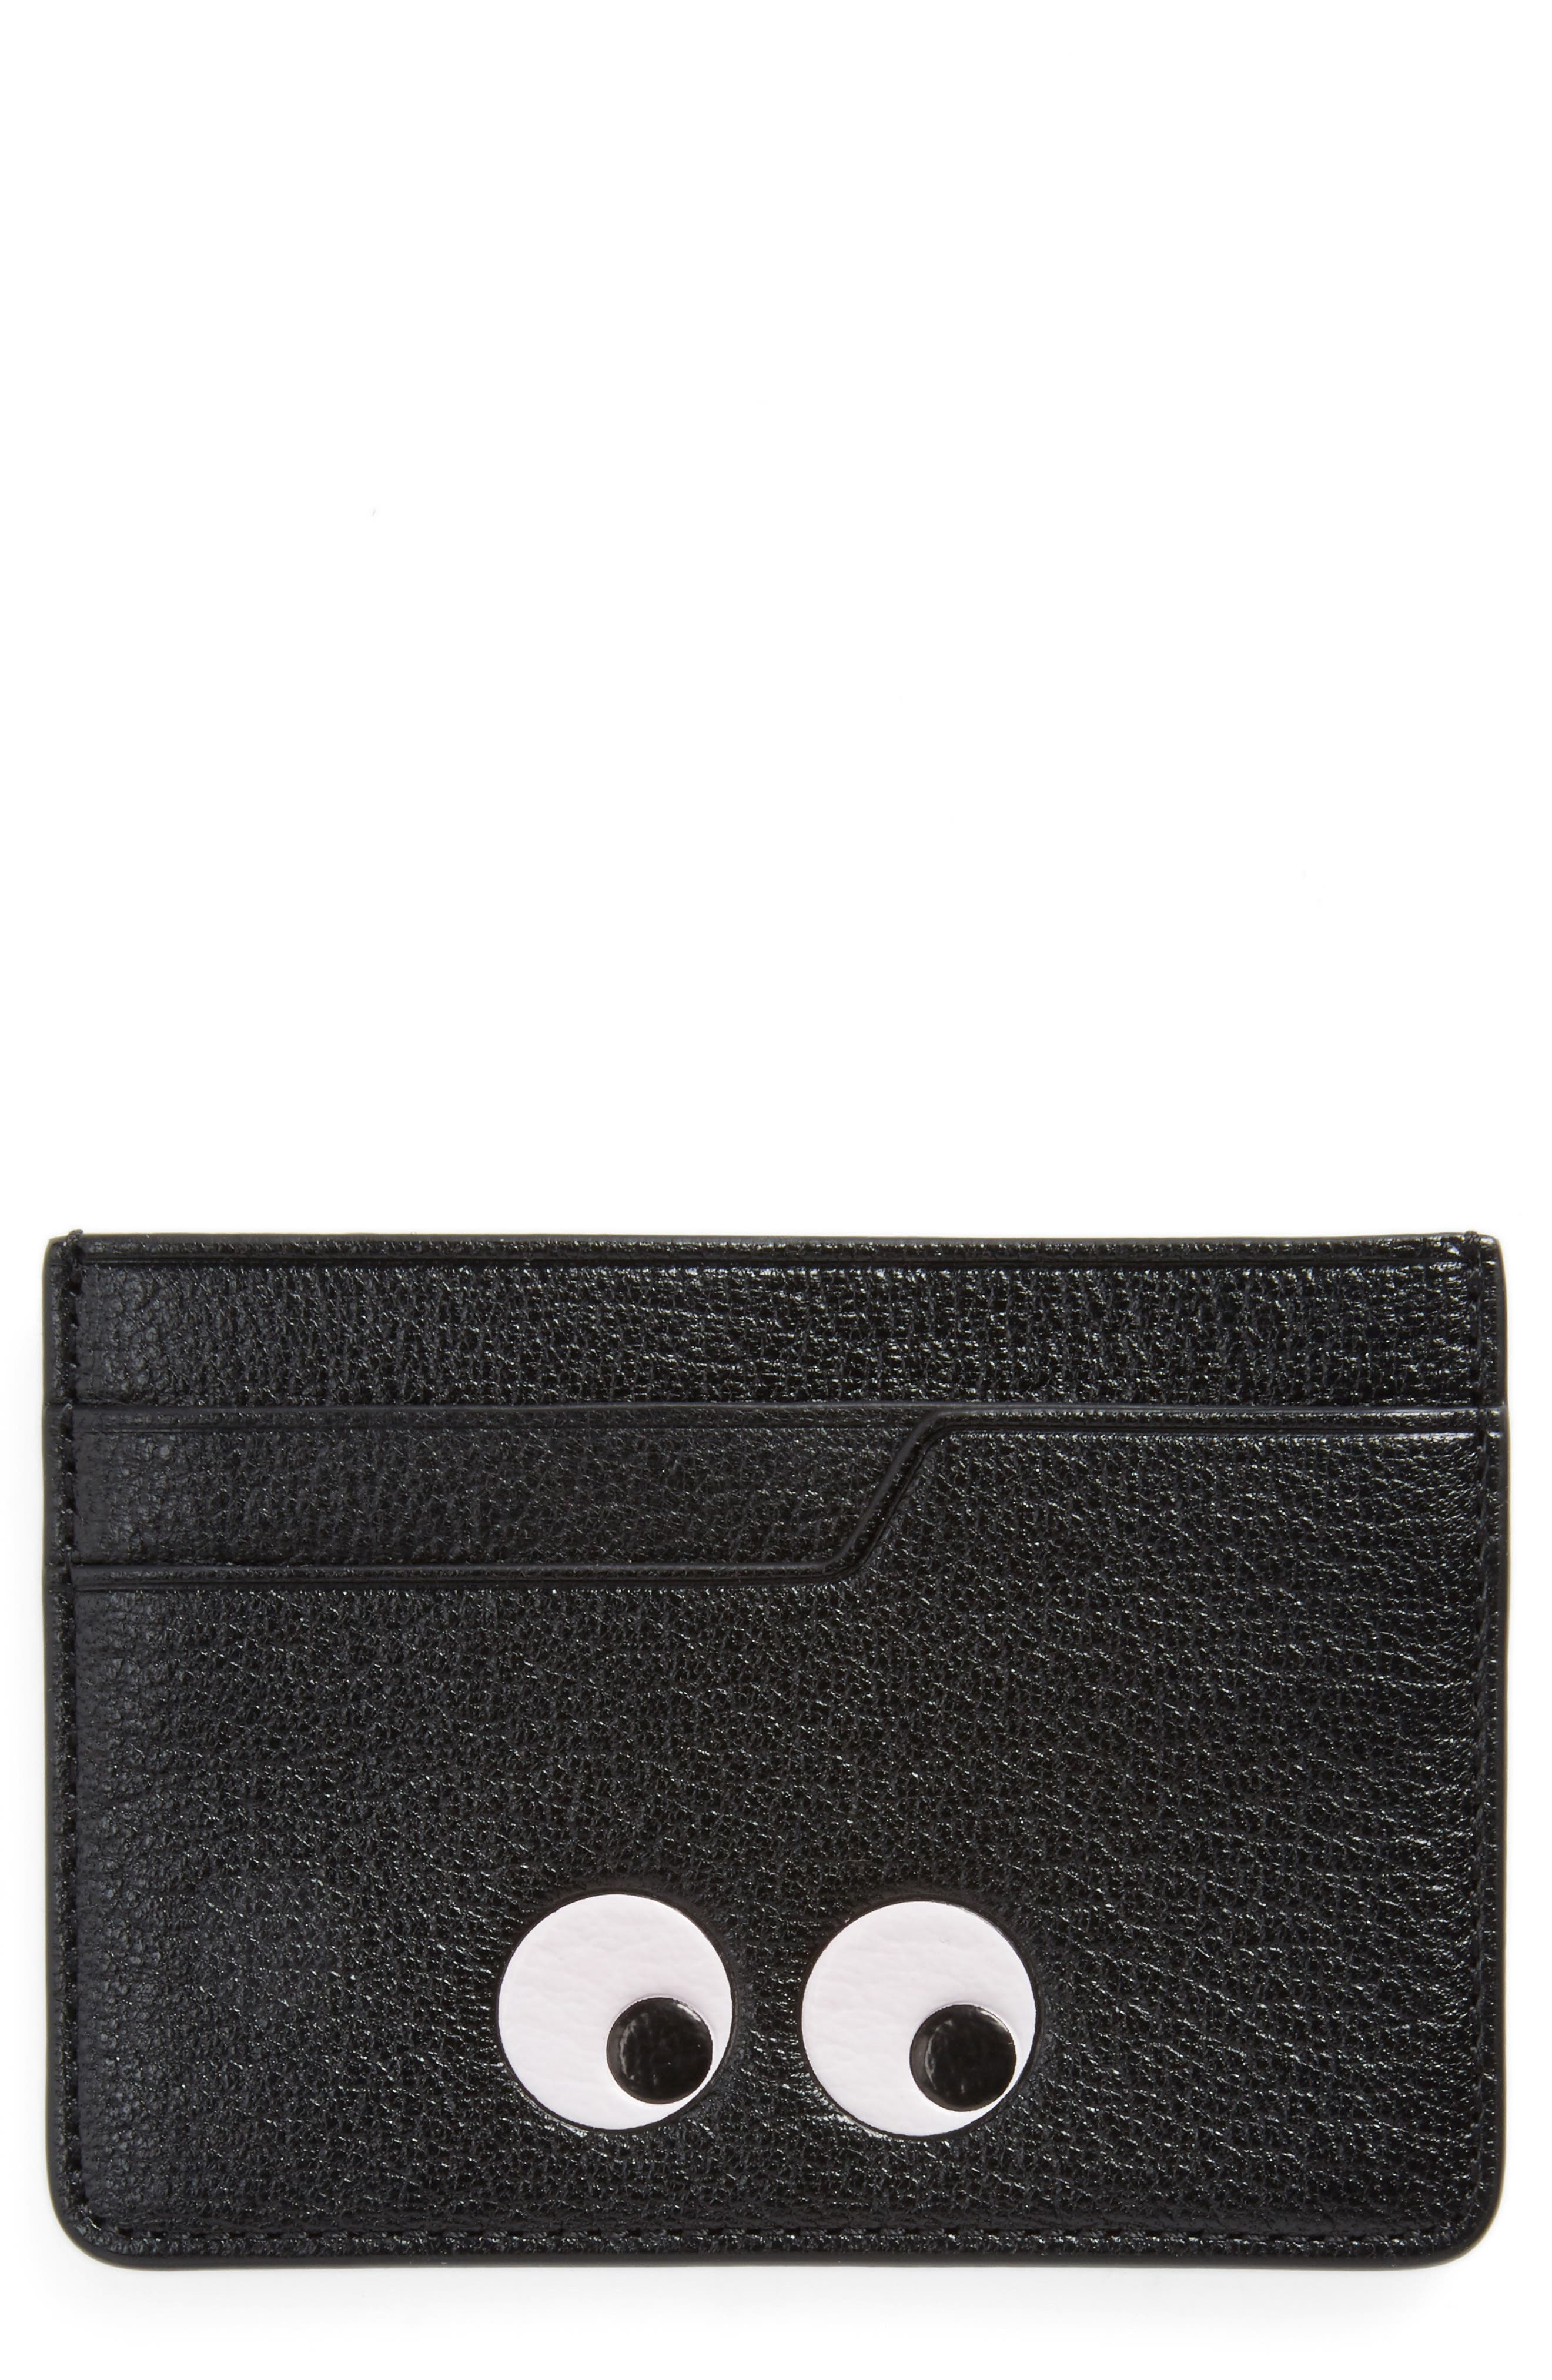 Eyes Leather Card Case,                         Main,                         color, Black